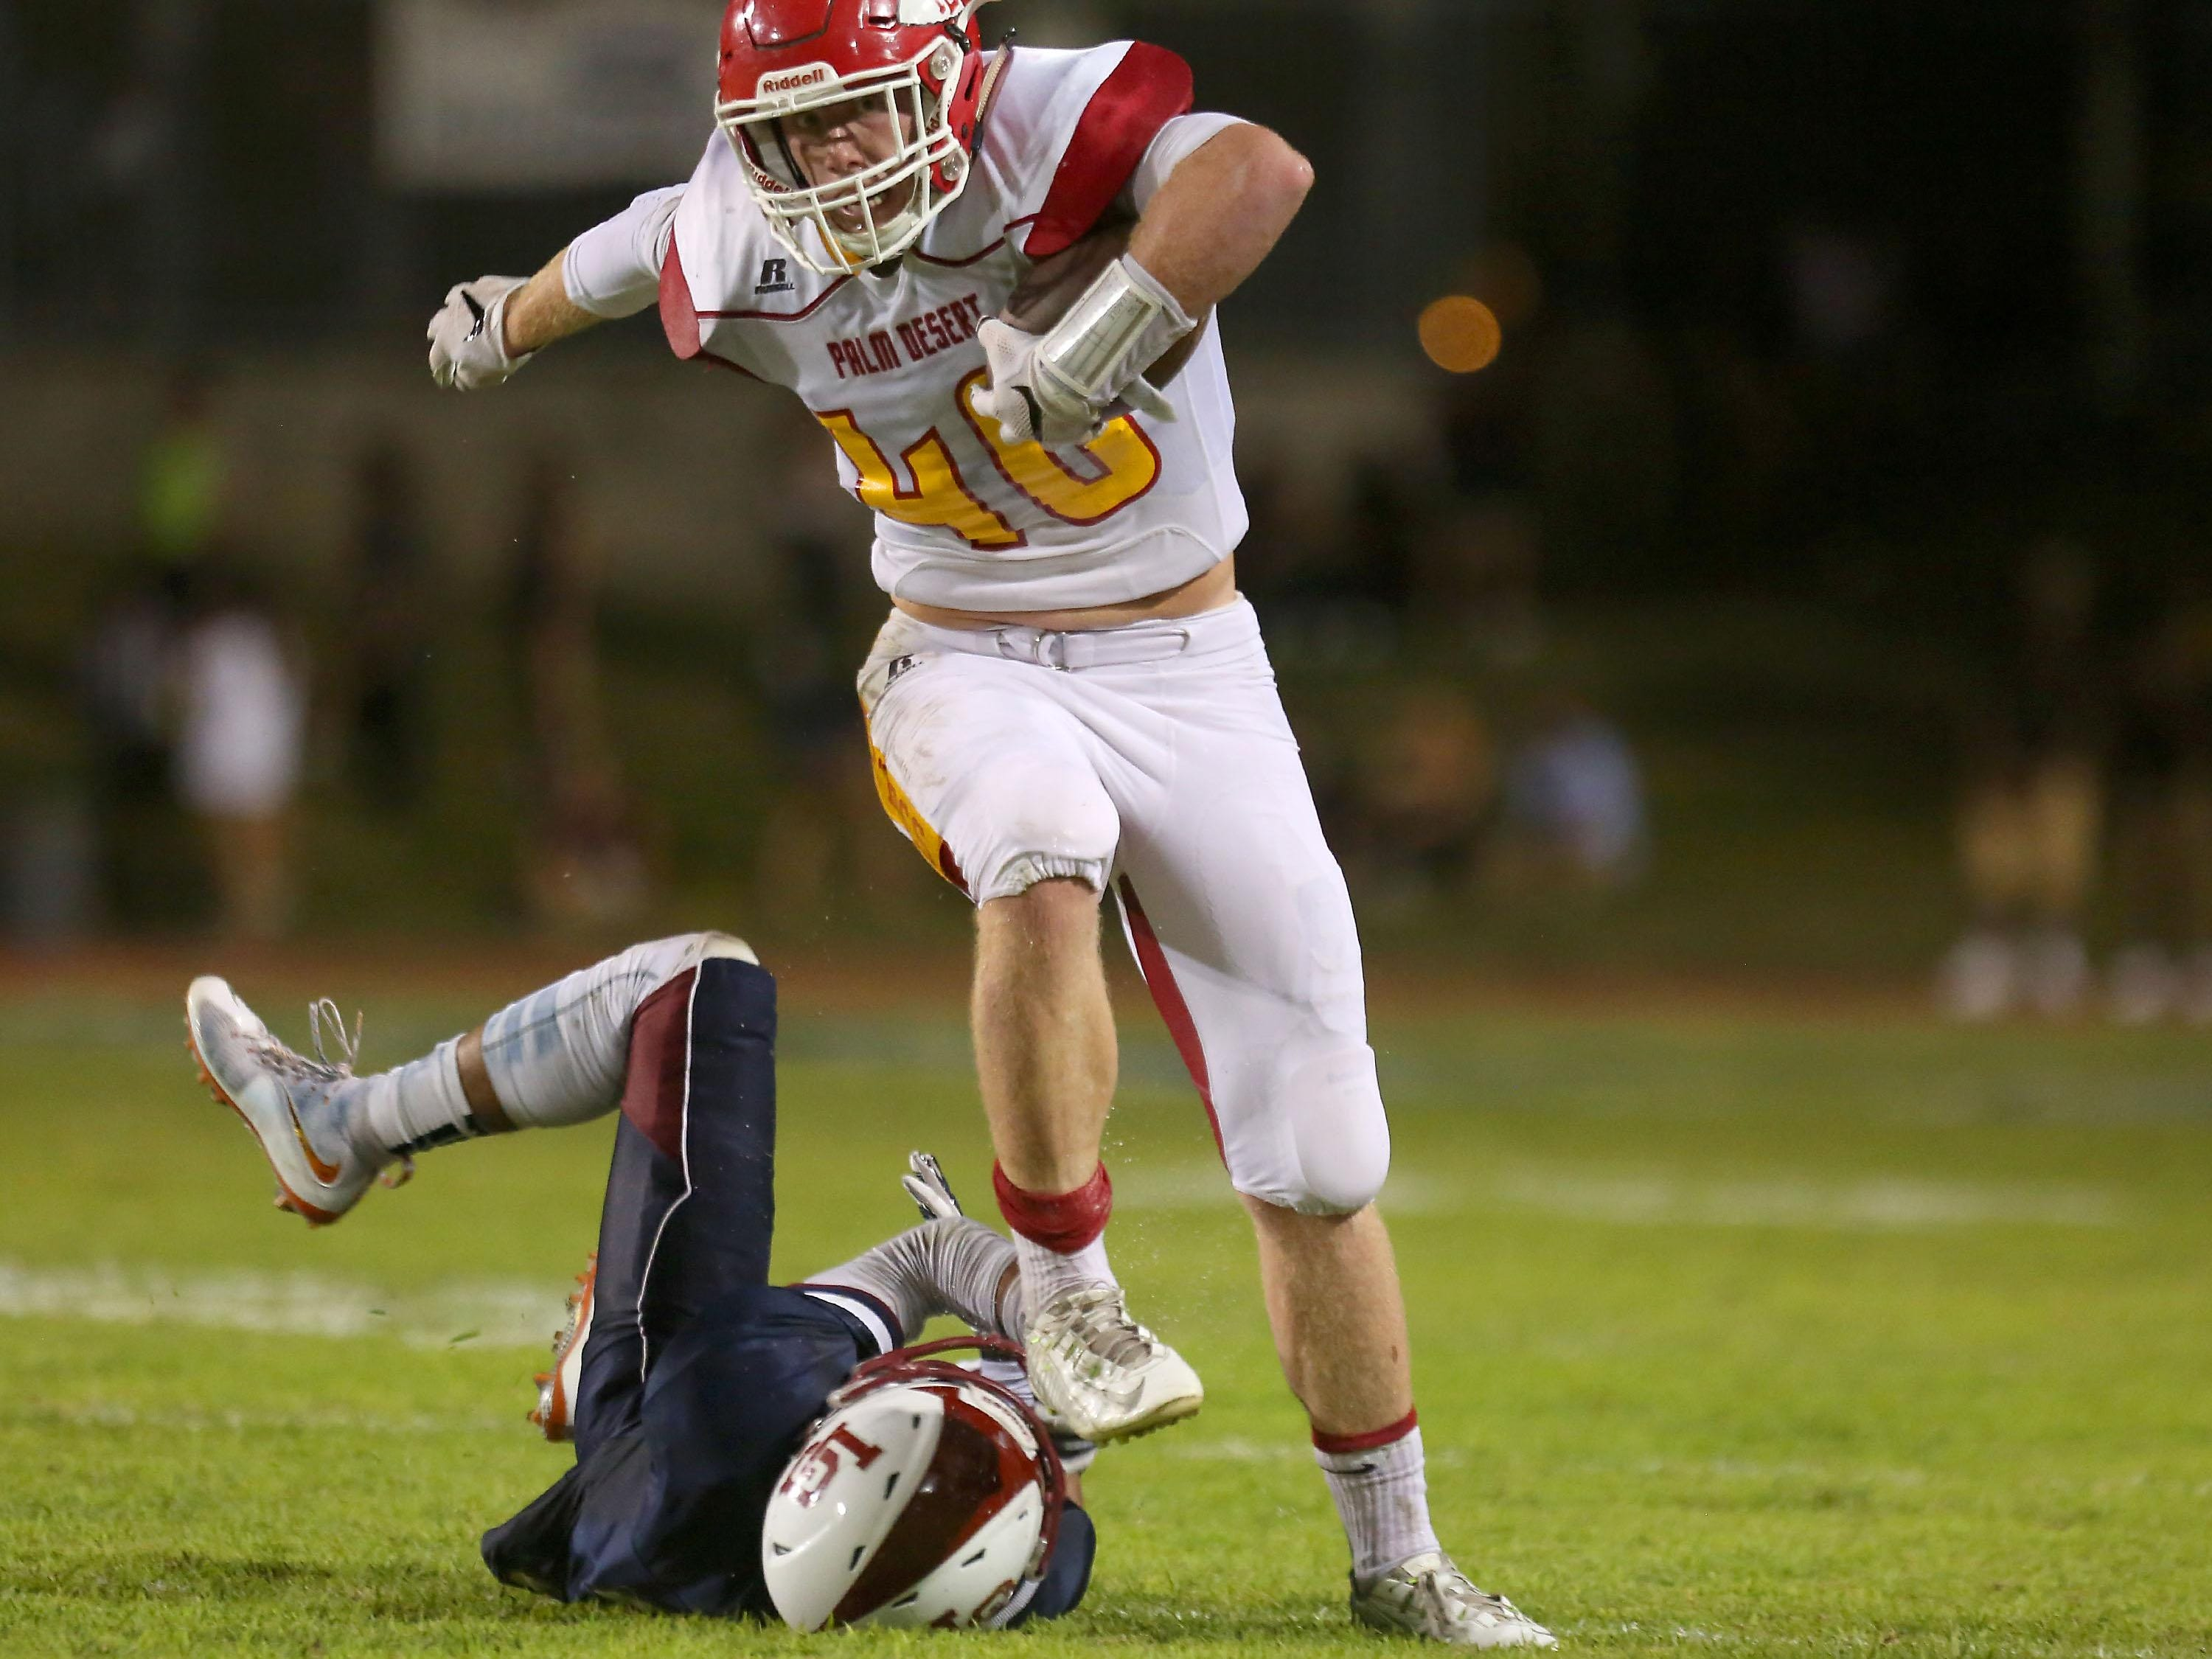 Palm Desert receiver Tommy Jacobson catches a ball and picks up a fist down against La Quinta. Jacobson had 91 yards receiving on the night.